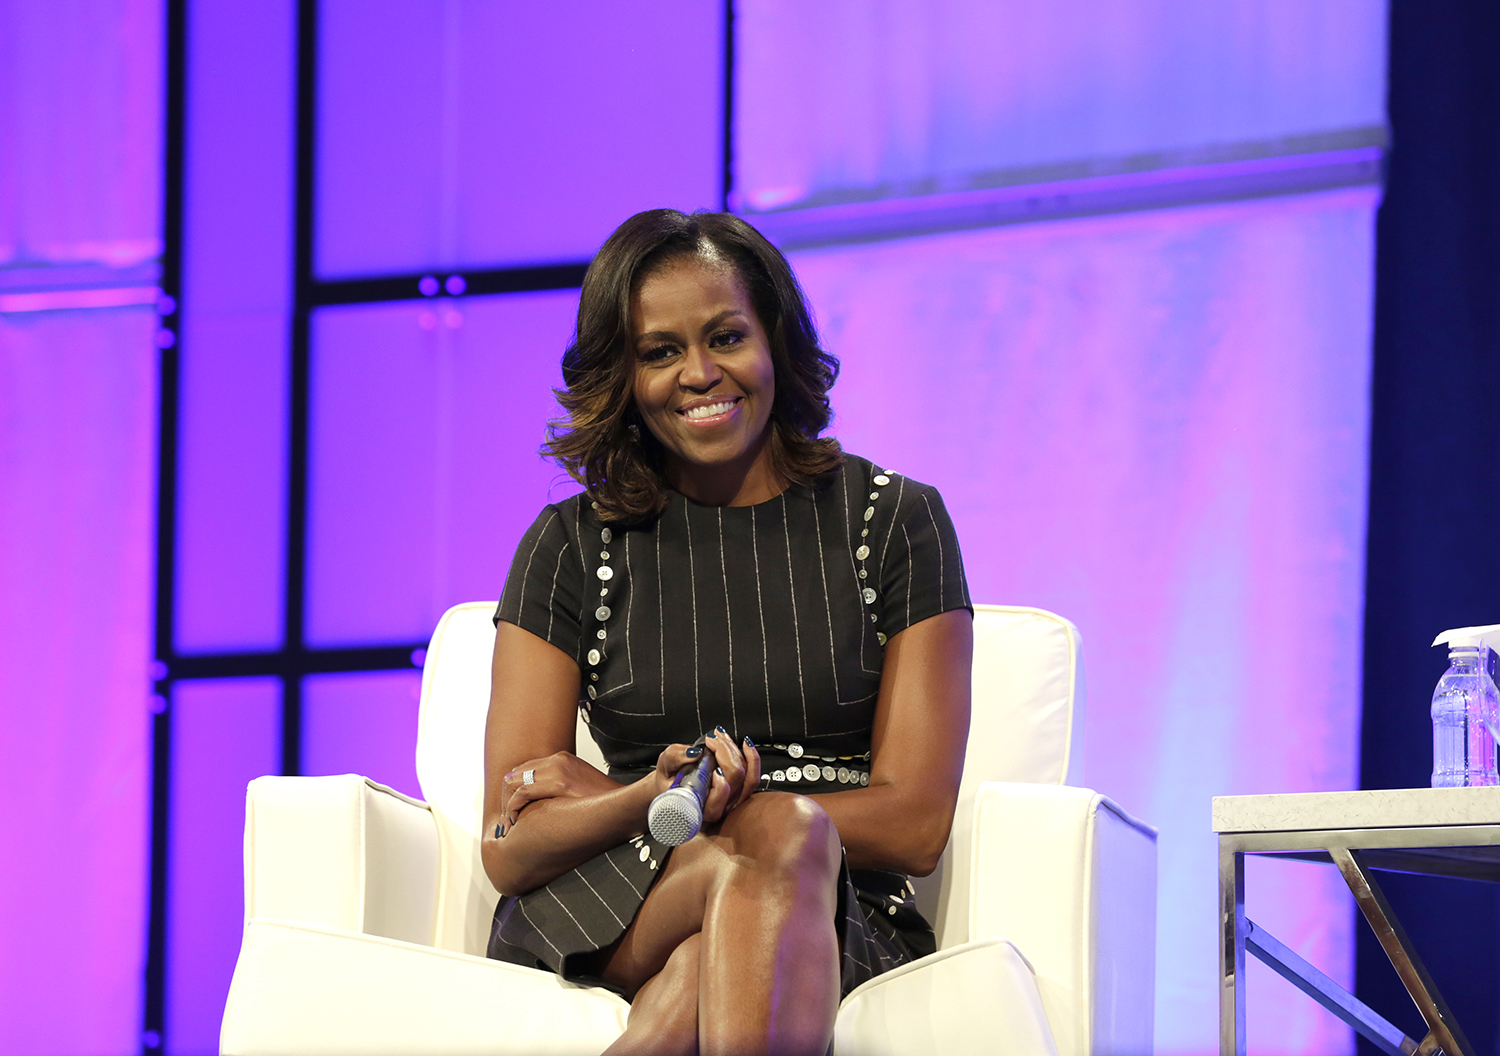 Michelle Obama Smiling at Crowd